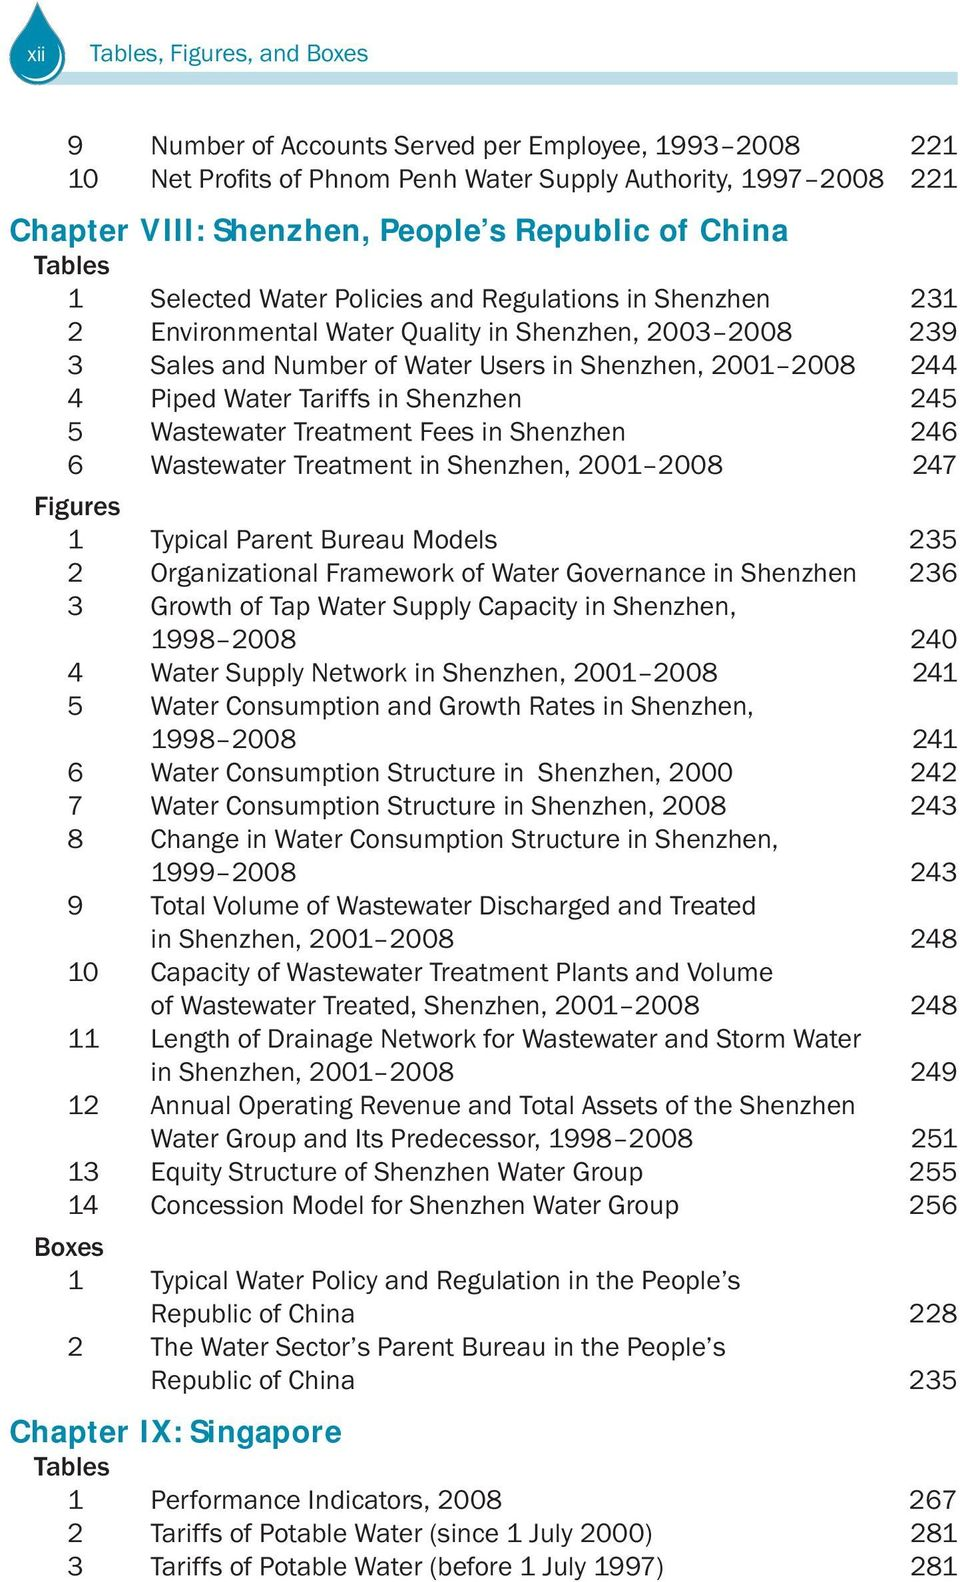 246 6 Wastewater Treatment in Shenzhen, 2001 2008 247 Figures 1 Typical Parent Bureau Models 235 2 Organizational Framework of Water Governance in Shenzhen 236 3 Growth of Tap Water Supply Capacity